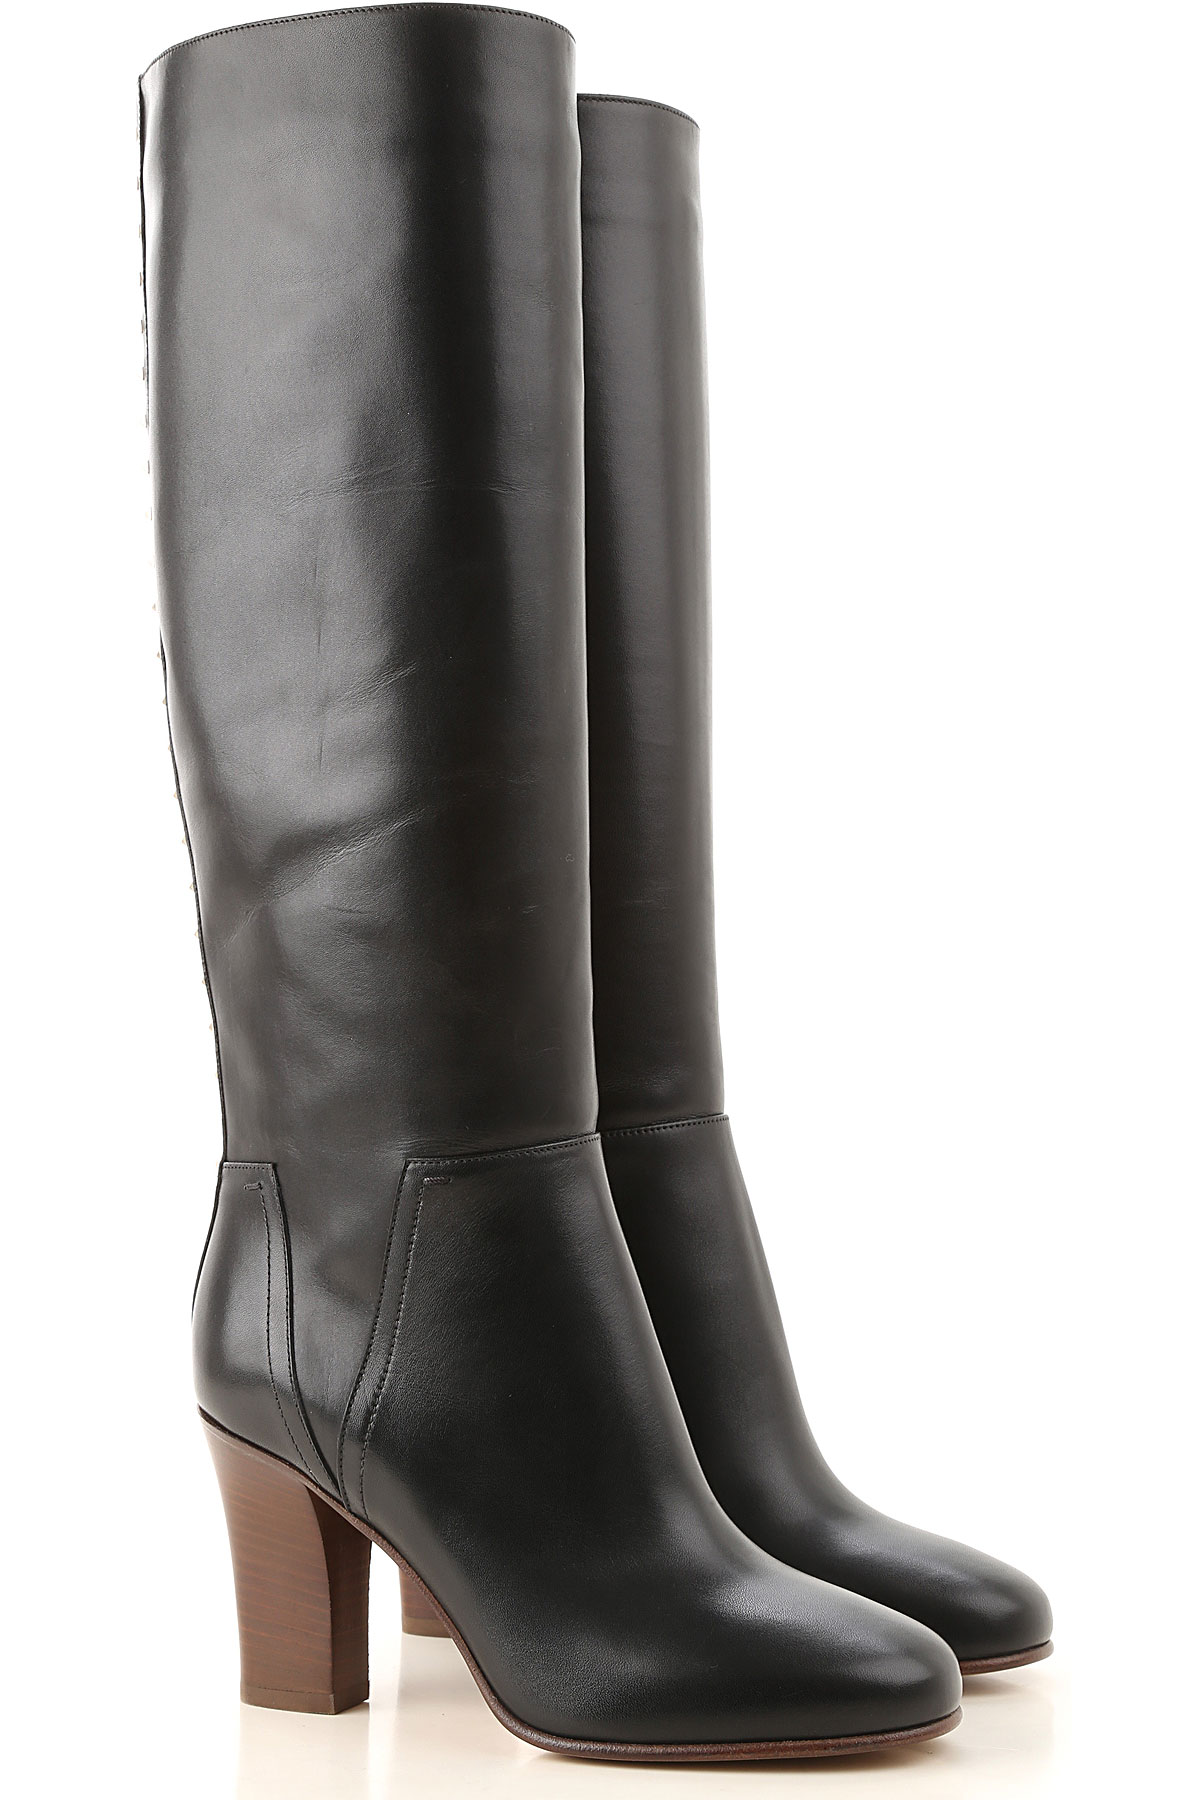 Valentino Garavani Boots for Women, Booties On Sale, Black, Leather, 2019, 10 7 8 9